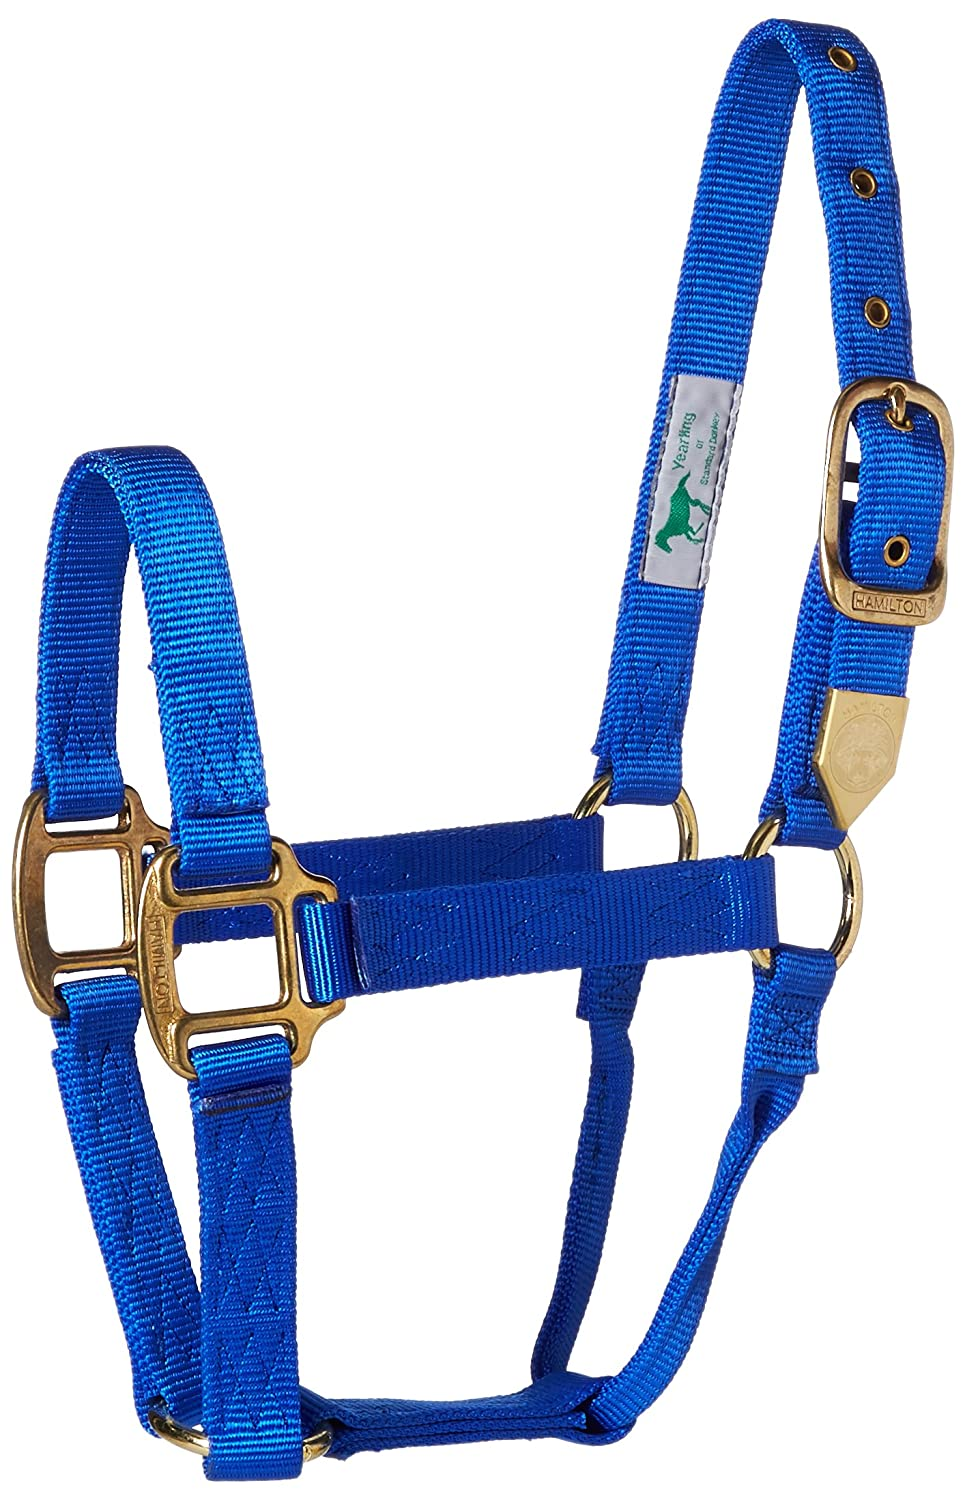 bluee Yearling, 300-500 pounds bluee Yearling, 300-500 pounds Hamilton 1-Inch Nylon Horse Halter, Yearling Size (300-500-Pounds), bluee